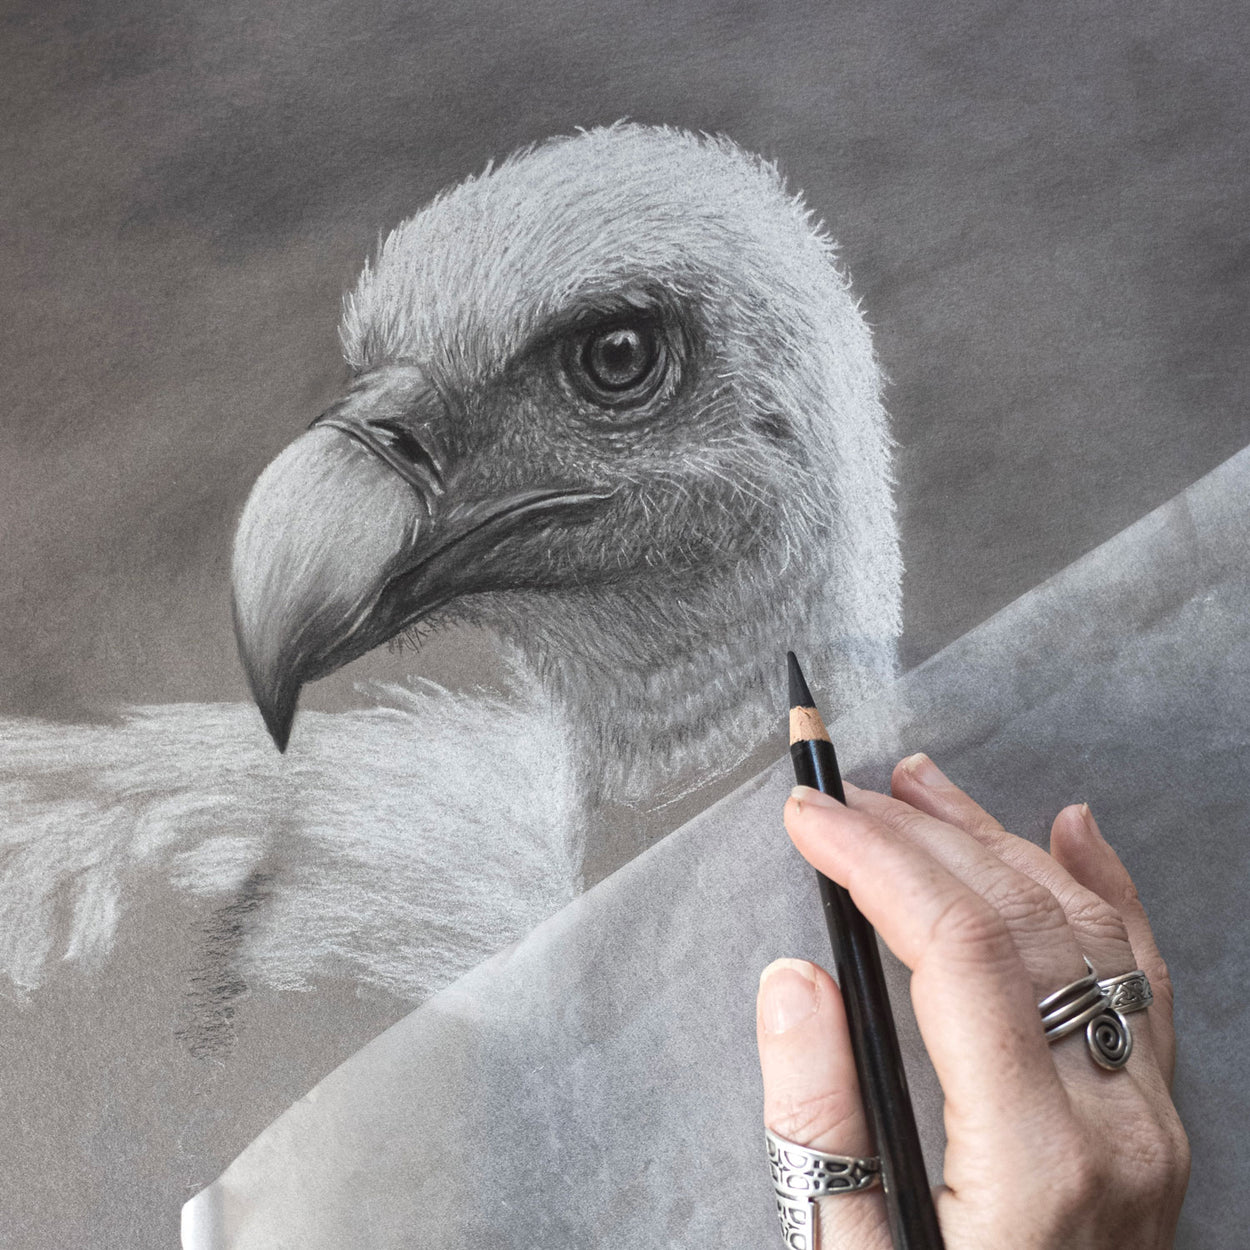 Griffon Vulture Drawing In Progress 1 - Jill Dimond